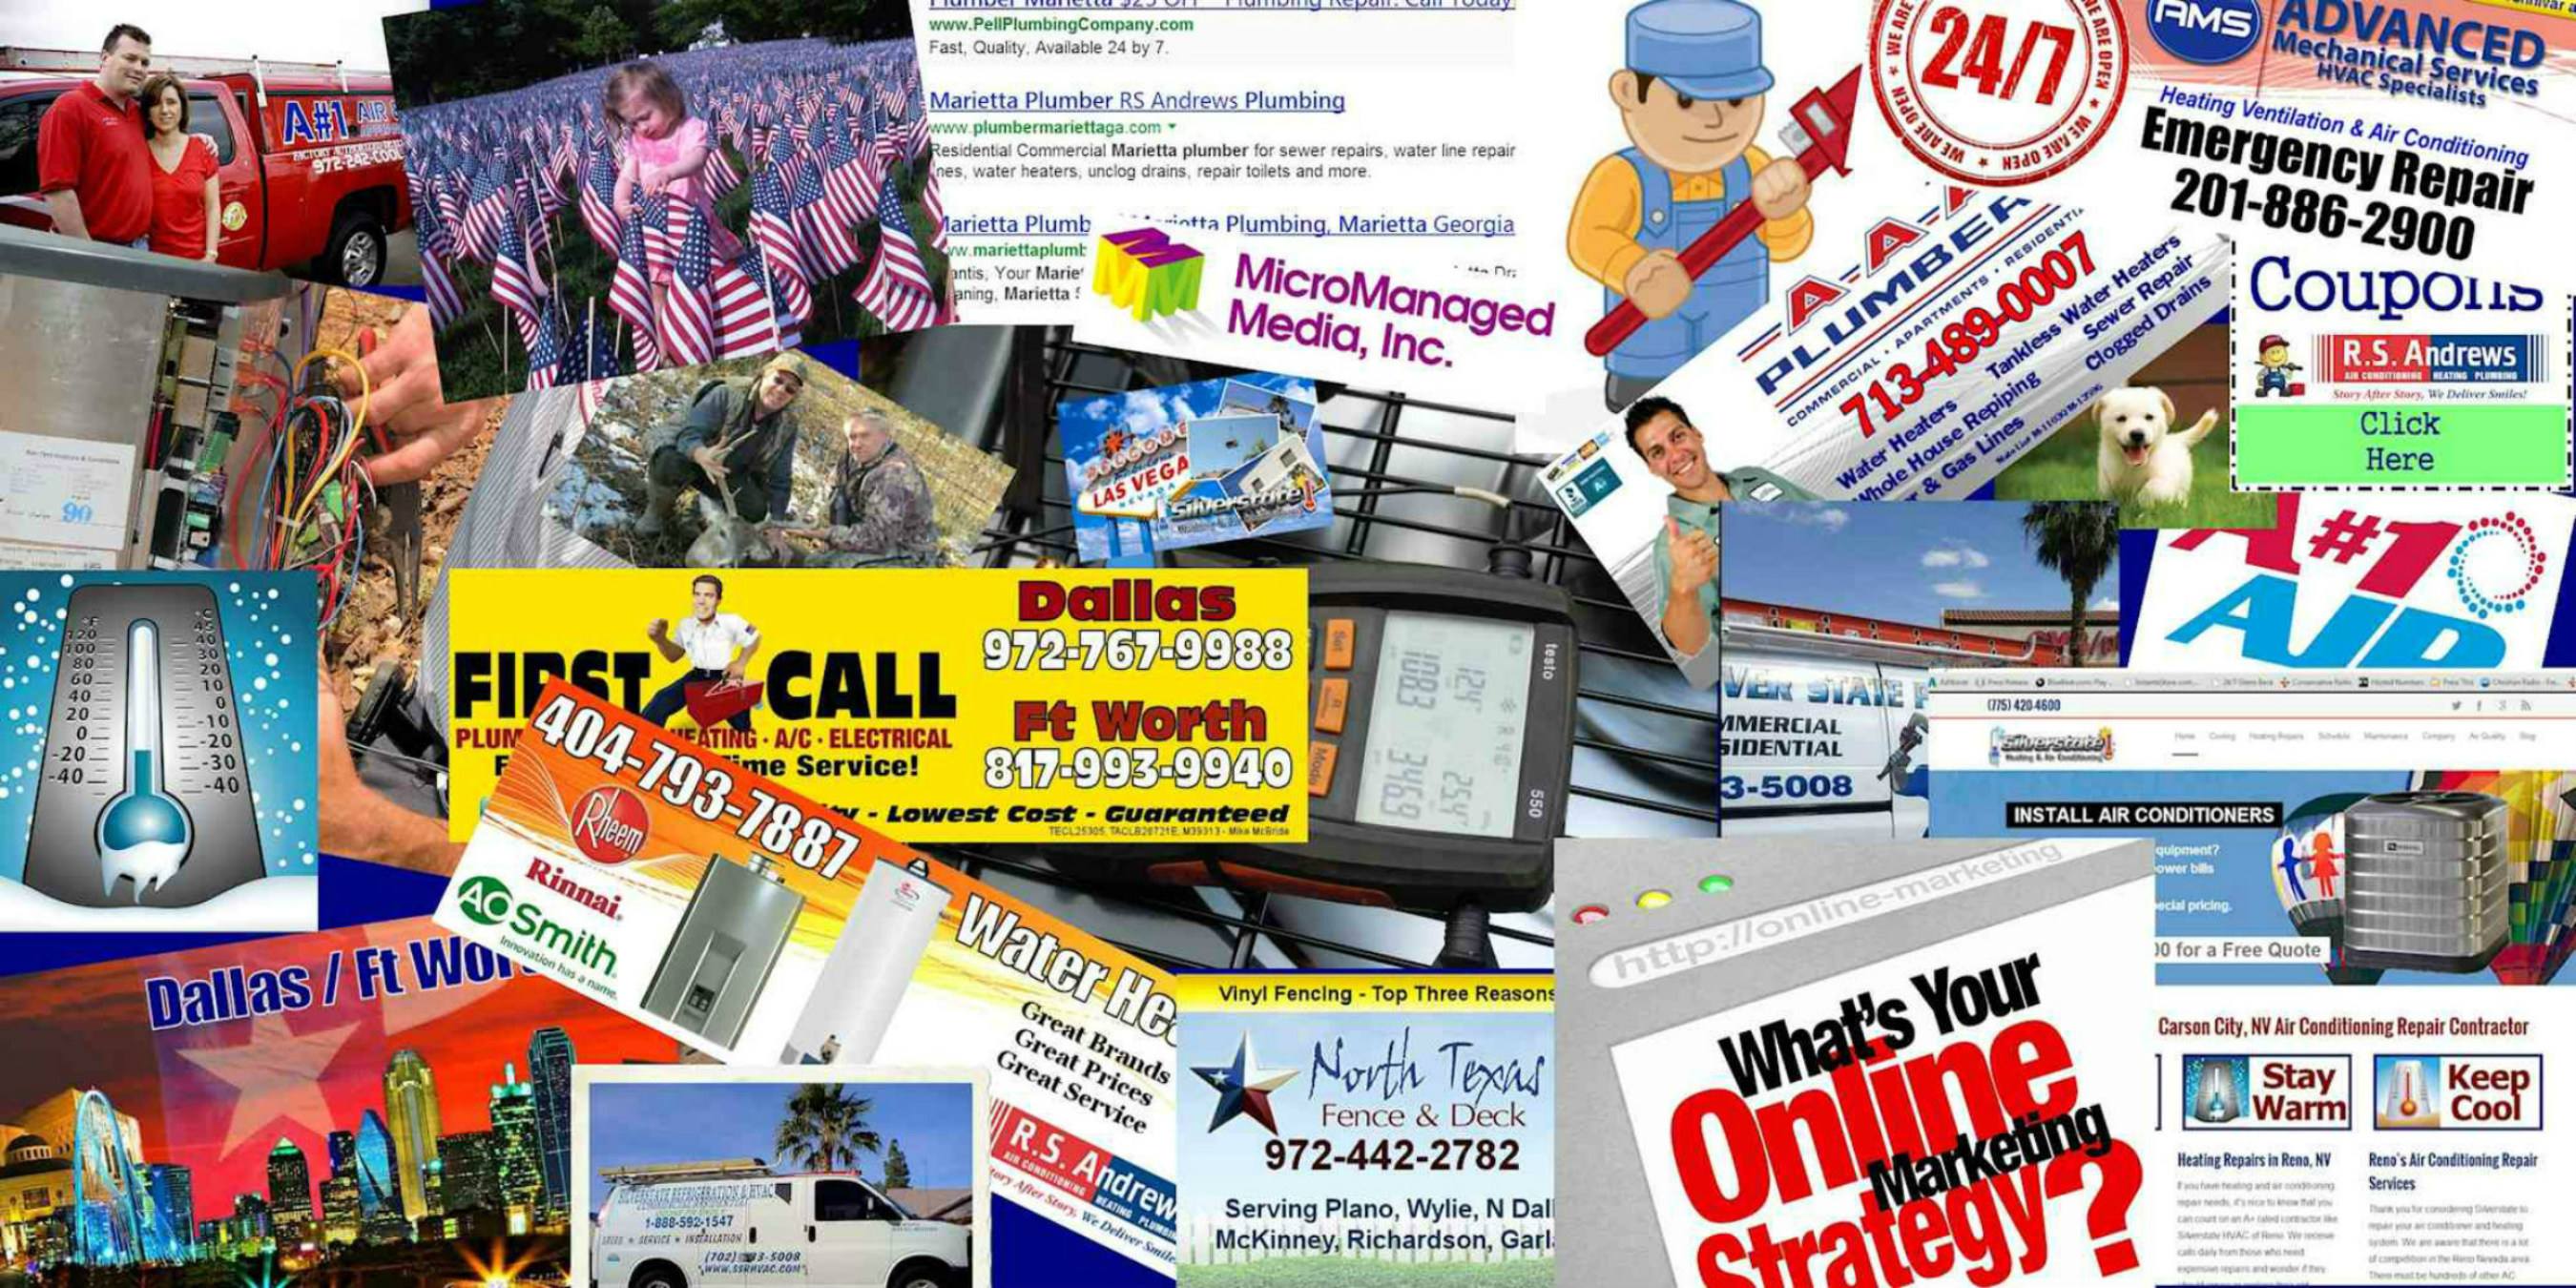 MicromanagedMedia Launches 'My Distributor is My Hero' Program for HVAC and Plumbing Wholesale Distributors